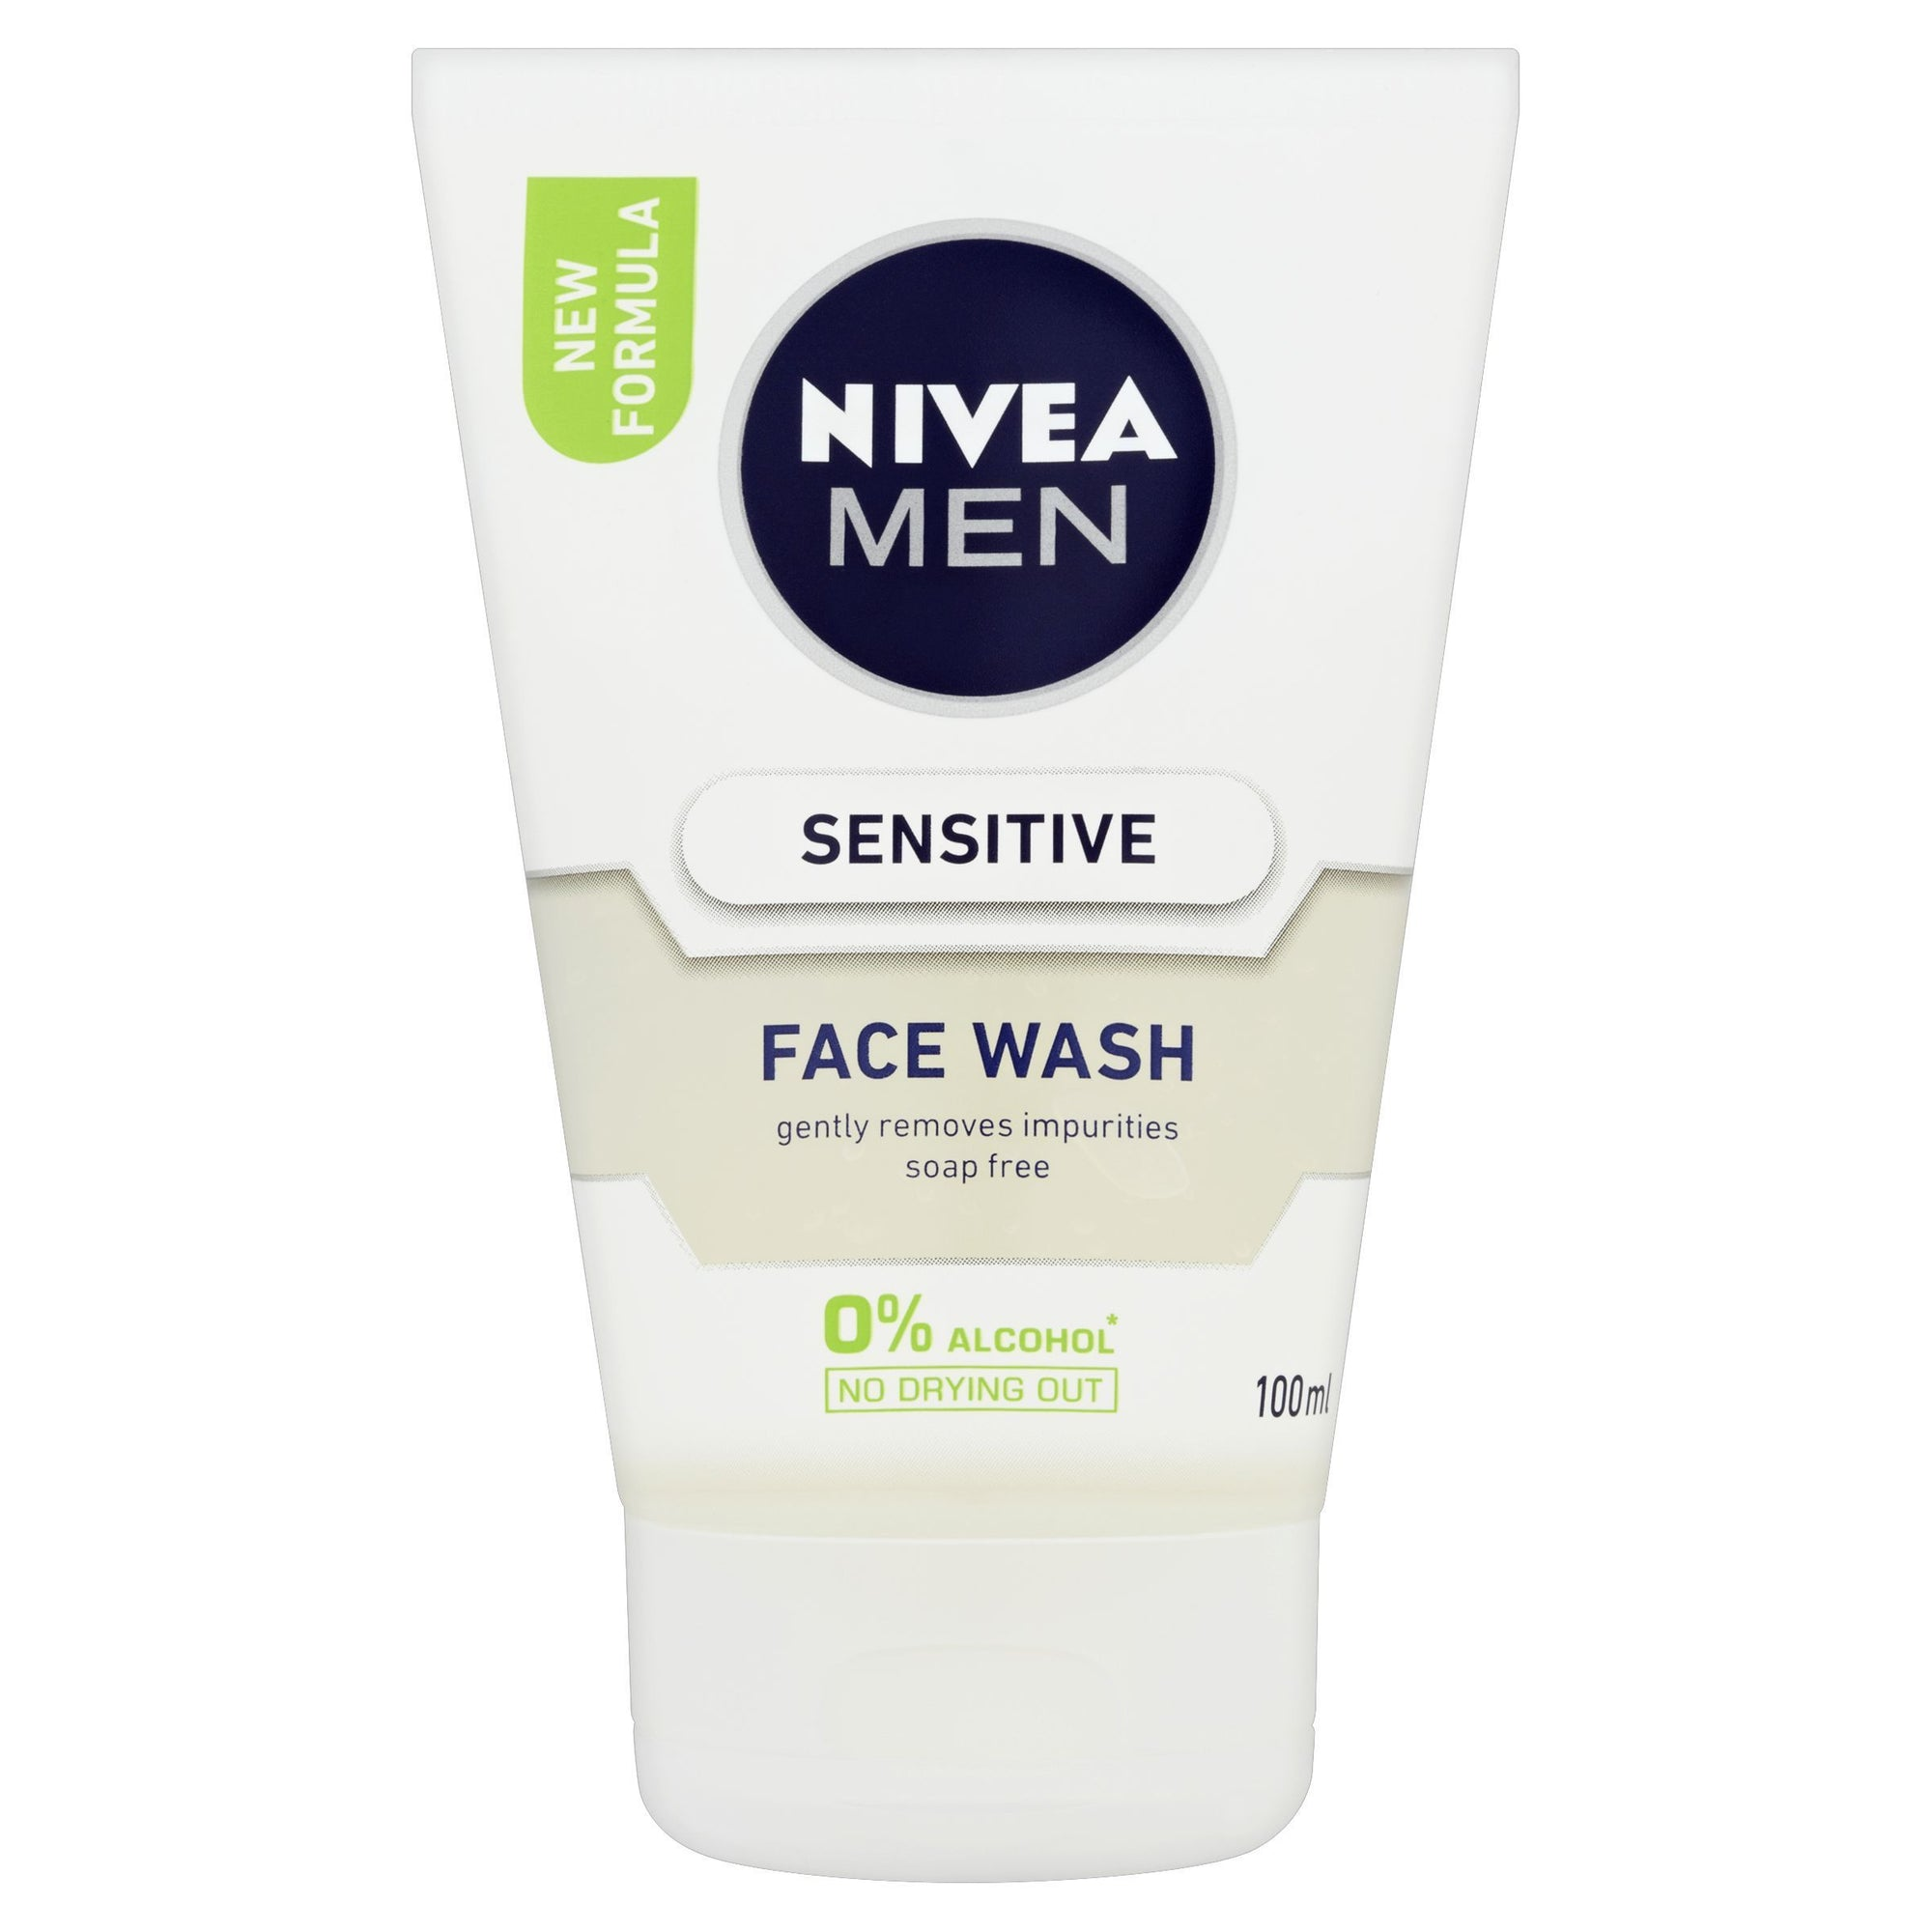 Nivea Men Sensitive Face Wash 100ml - Pack of 6 (Sty-NVMNSNSFW)